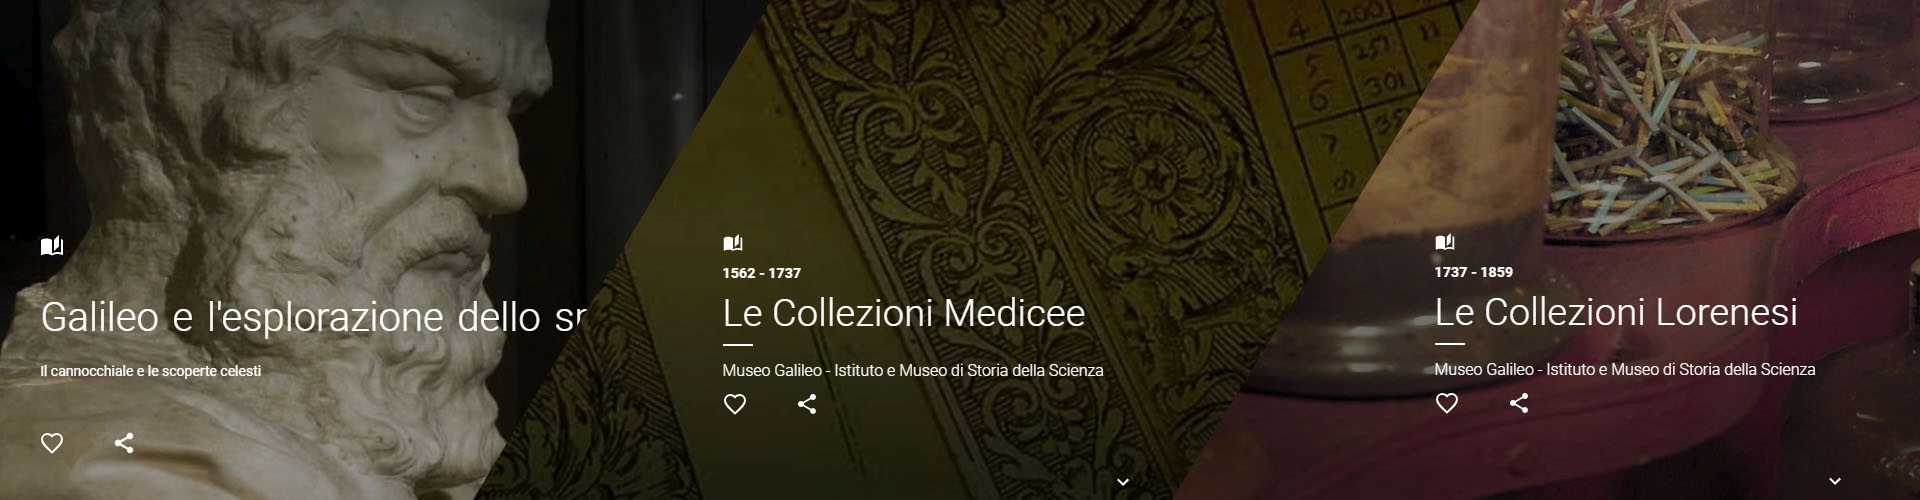 The Museo Galileo on the Google Cultural Institute